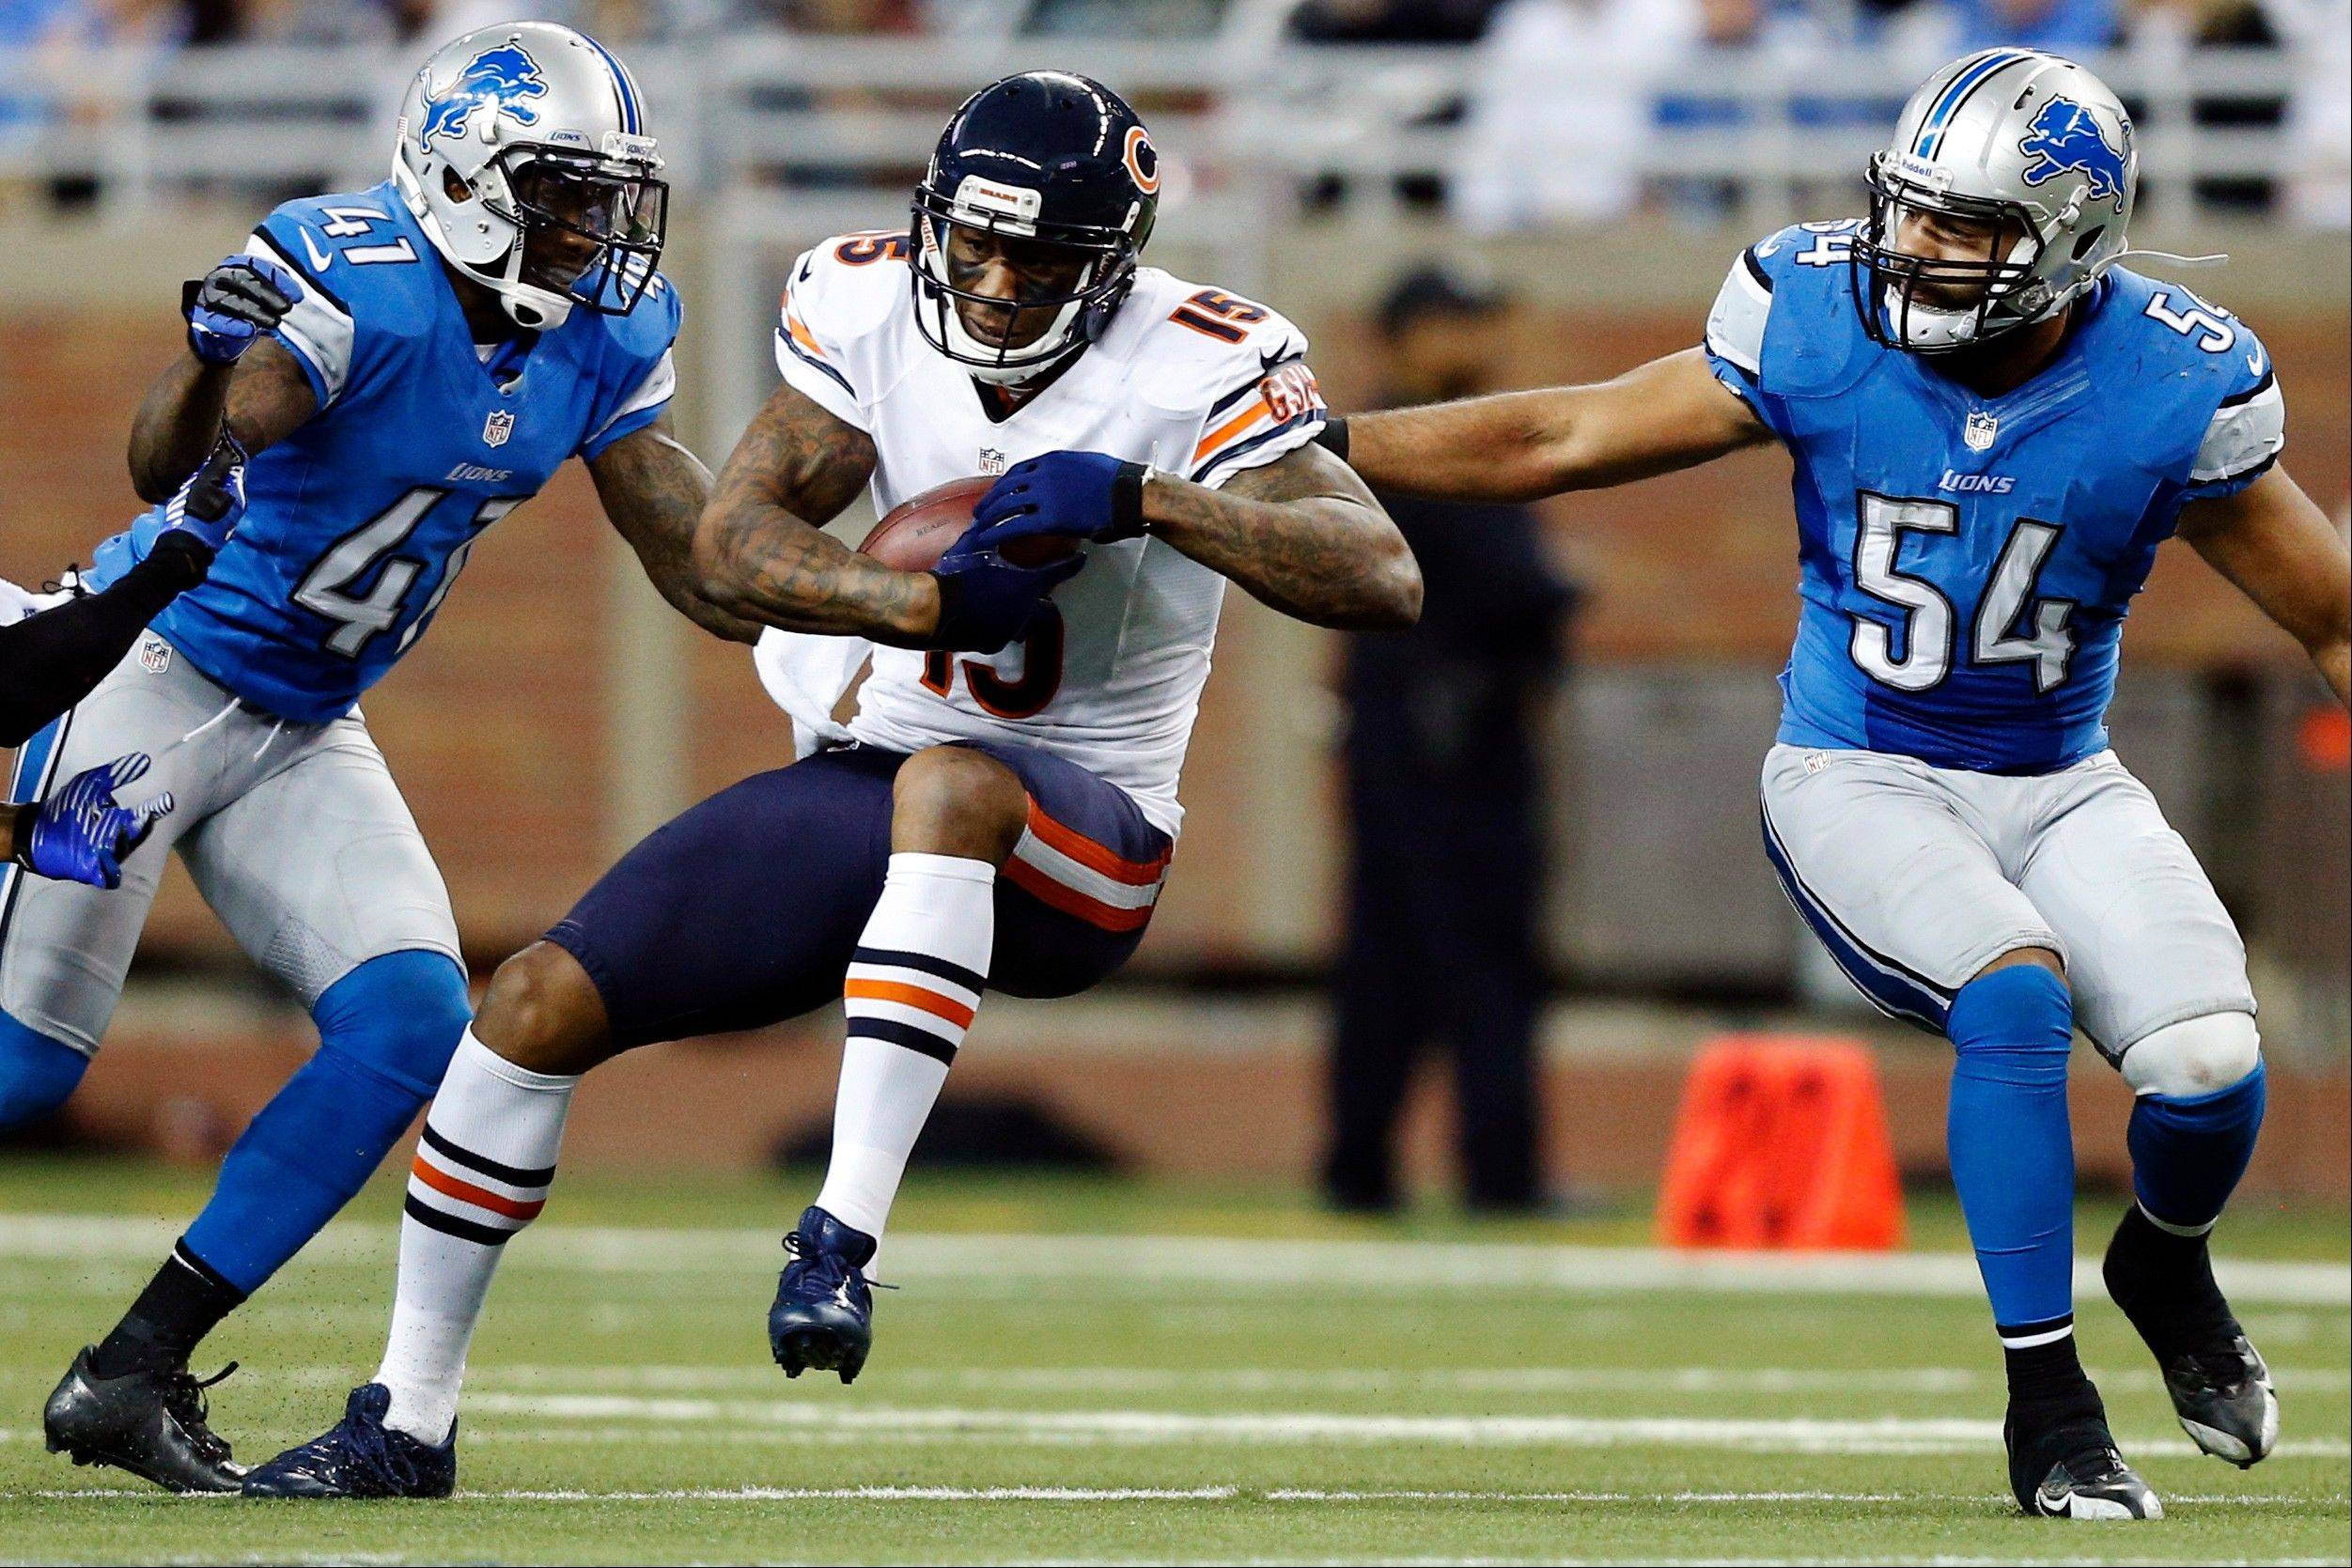 Chicago Bears wide receiver Brandon Marshall (15) makes a catch while defended by Detroit Lions cornerback Ron Bartell (41) and outside linebacker DeAndre Levy (54) during the fourth quarter. The Bears won 26-24.